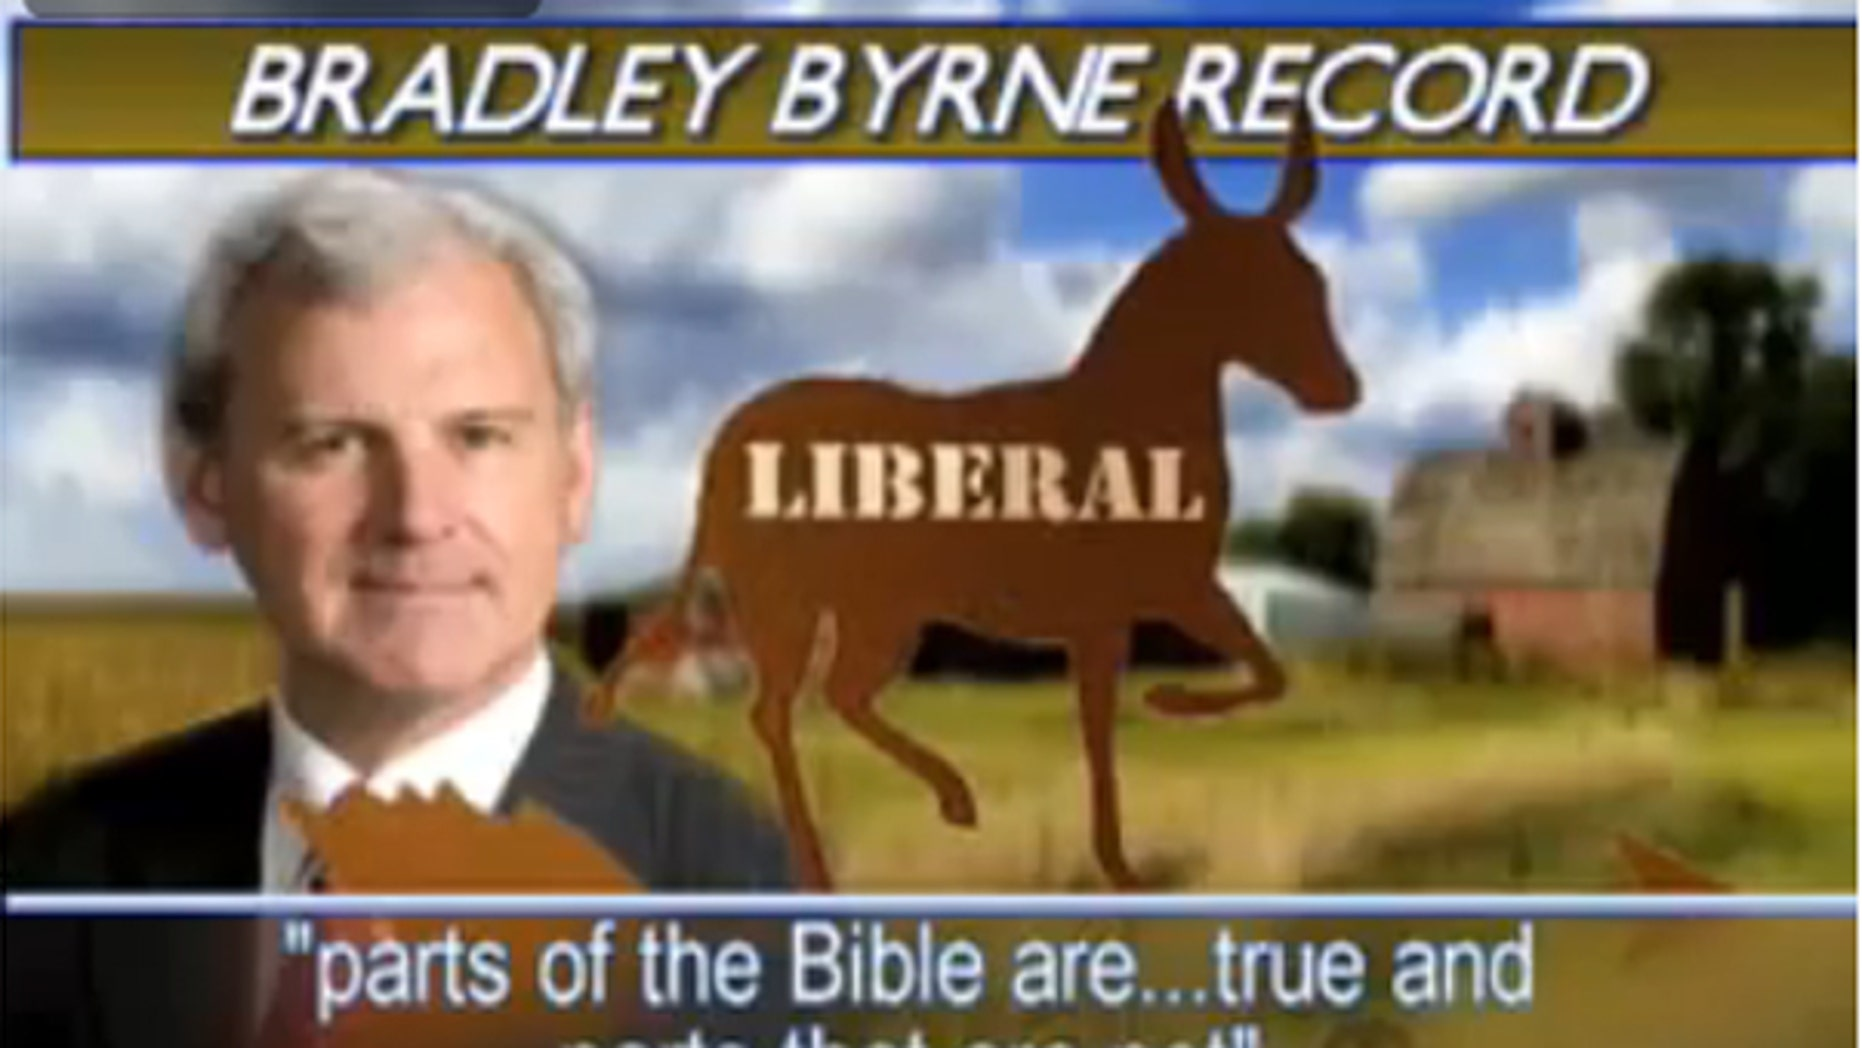 This ad was aired by True Republican PAC against Alabama gubernatorial candidate Bradley Byrne. (YouTube)